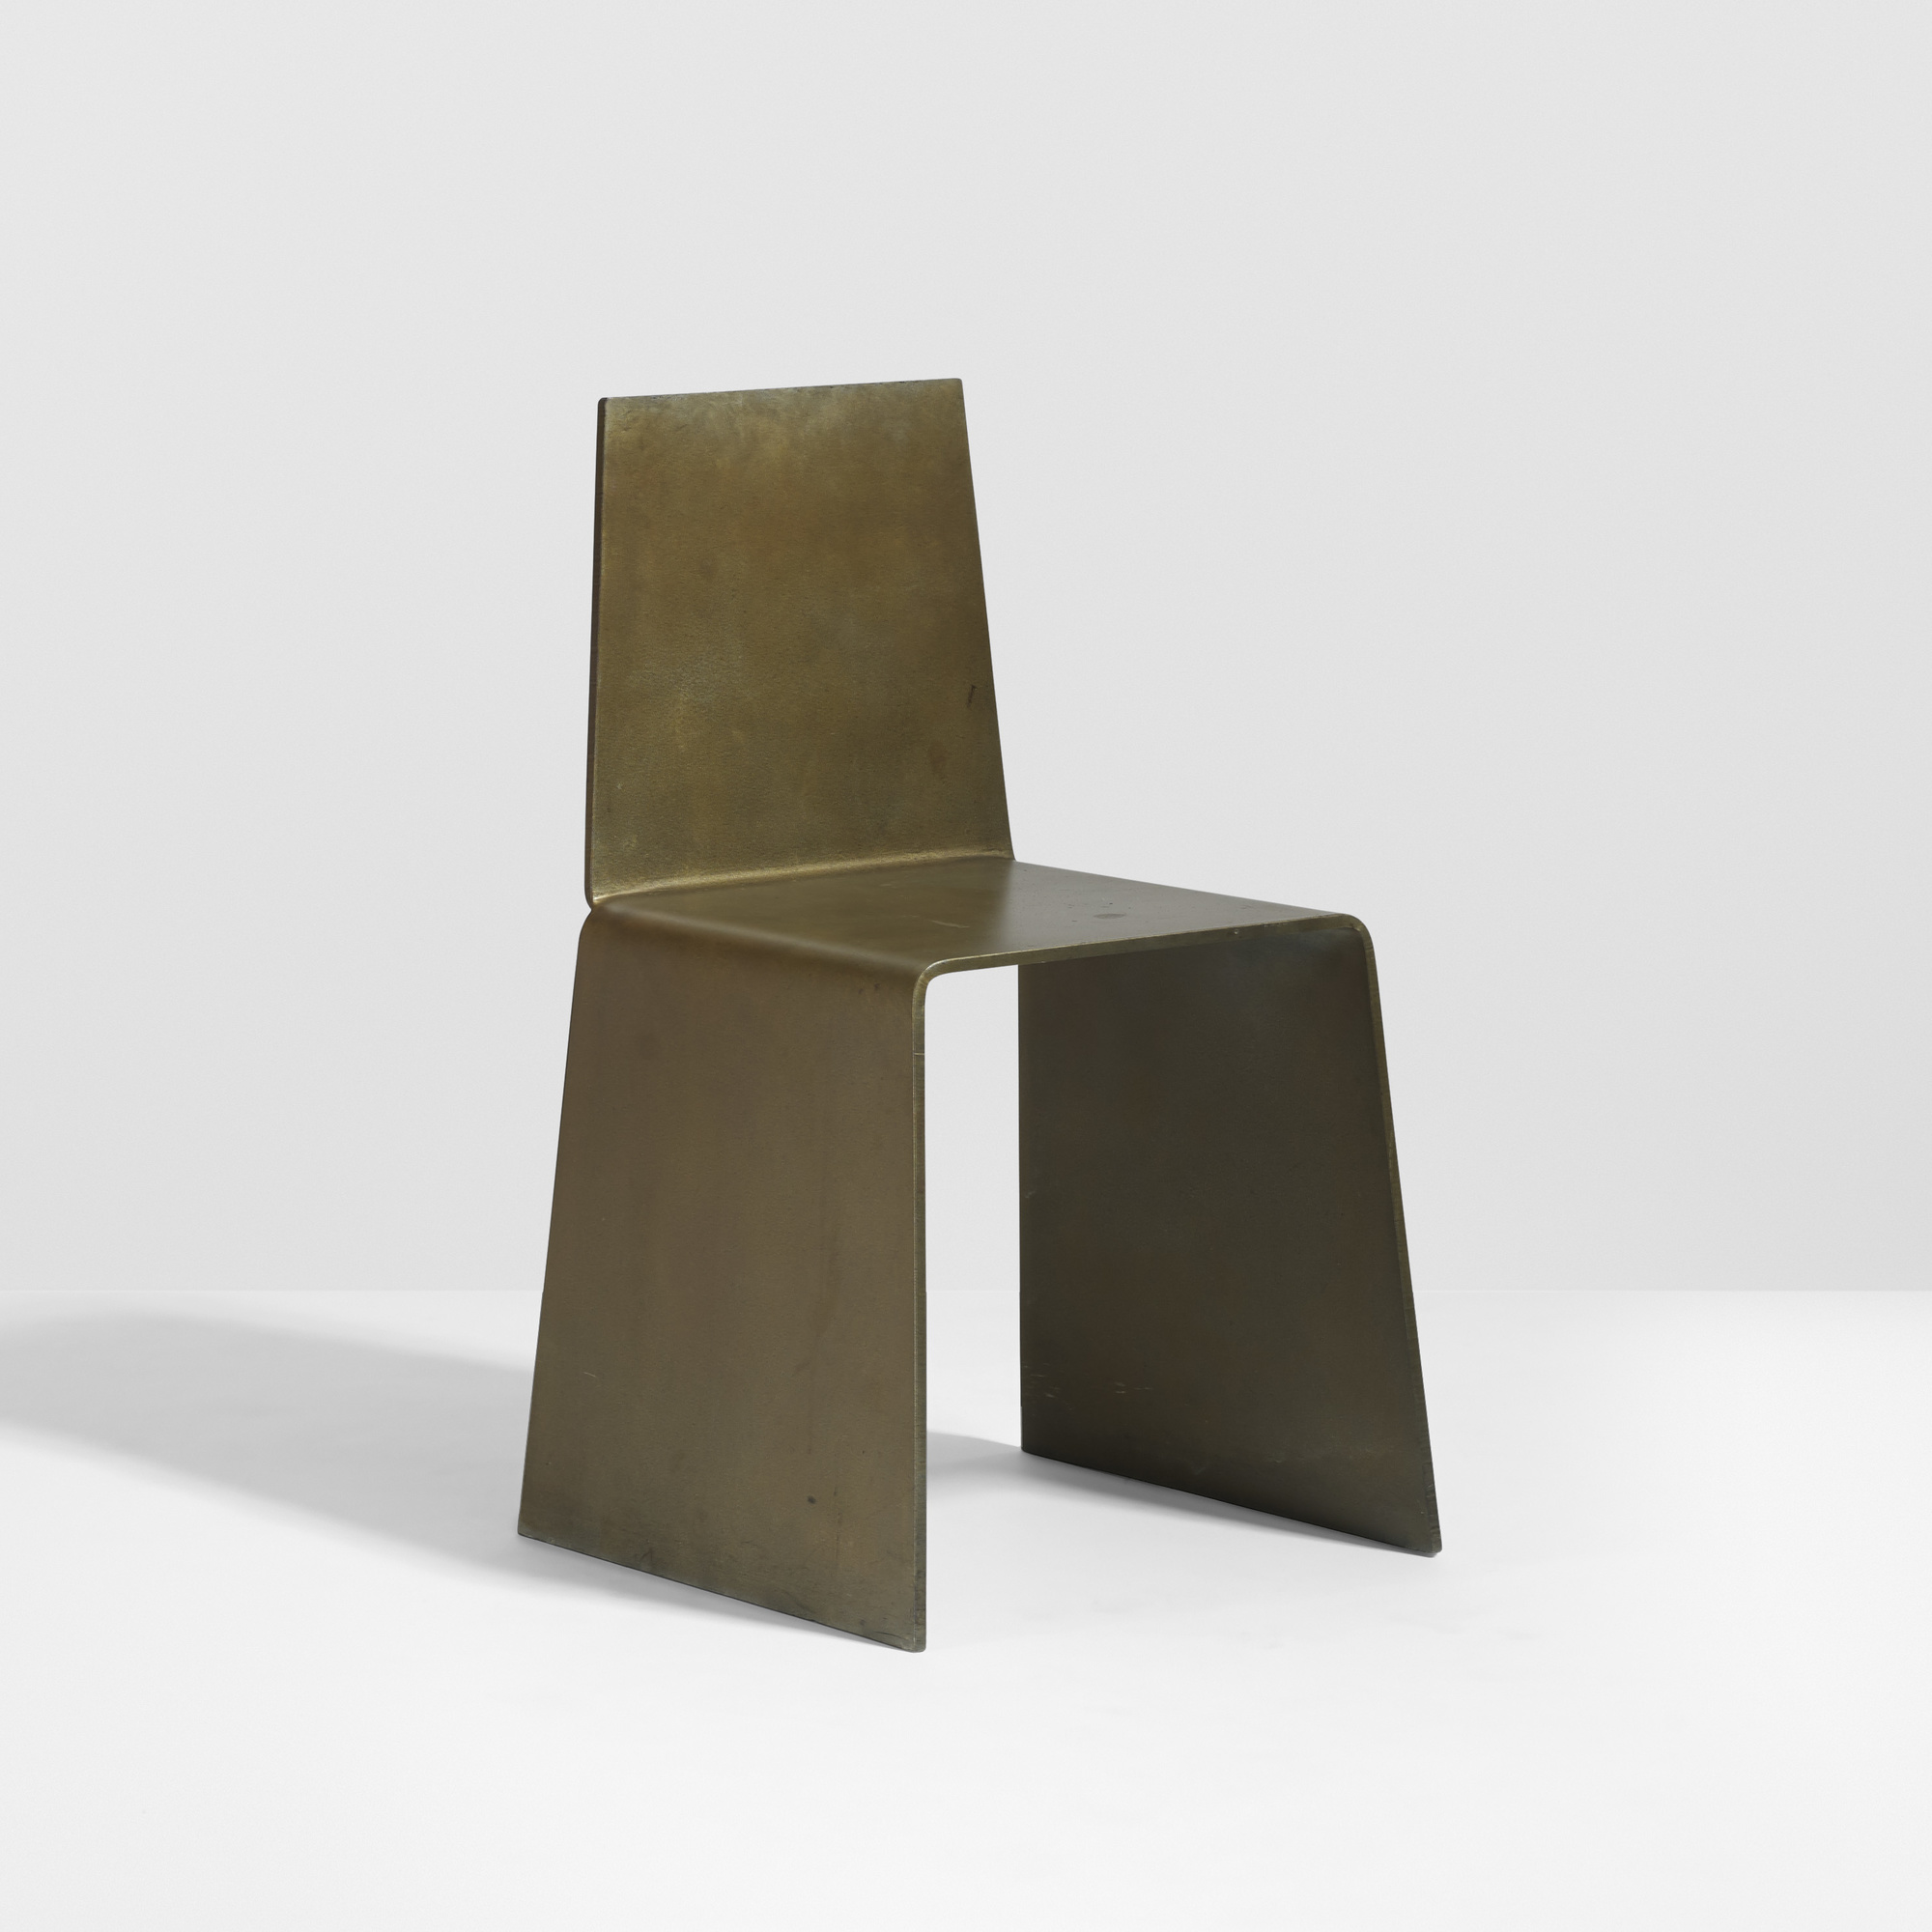 Awesome 15: Scott Burton / Steel Furniture Chair (1 Of 4)